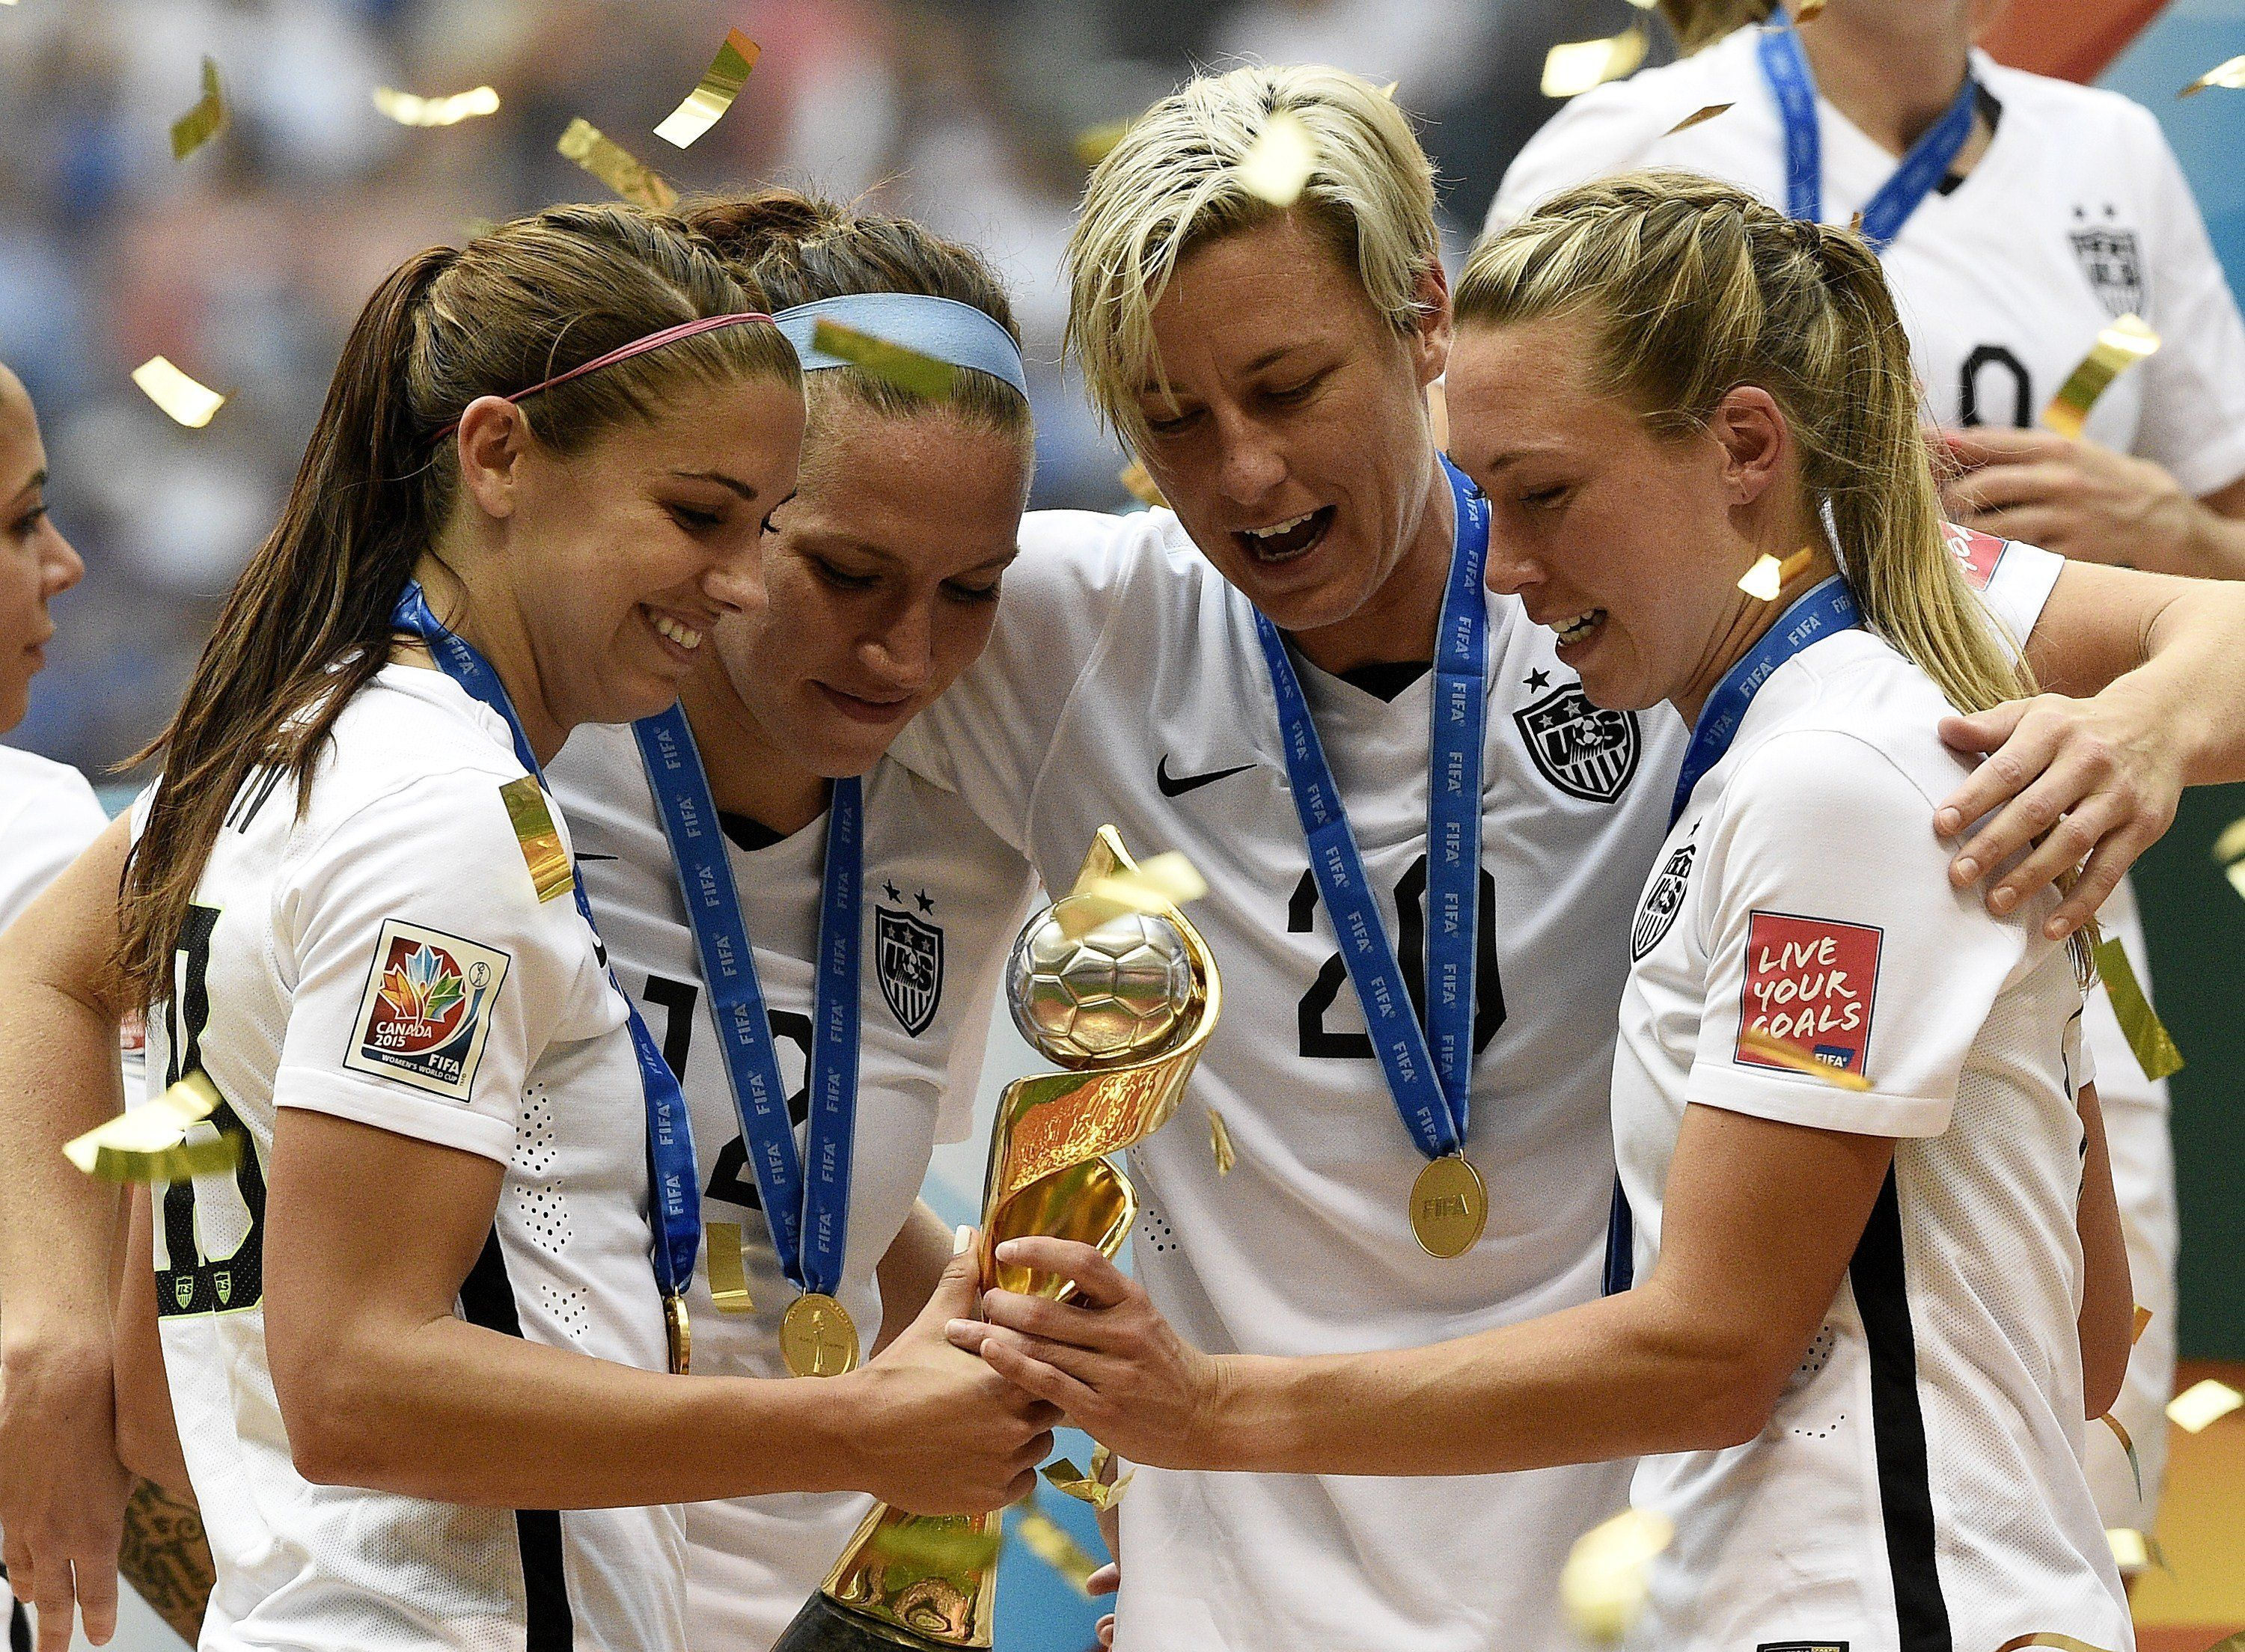 (L-R) USA's Alex Morgan, Lauren Holiday, Abby Wambach and Whitney Engen celebrate after winning the final 2015 FIFA Women's World Cup match between USA and Japan at the BC Place Stadium in Vancouver on July 5, 2015.  AFP PHOTO / FRANCK FIFE        (Photo credit should read FRANCK FIFE/AFP/Getty Images)